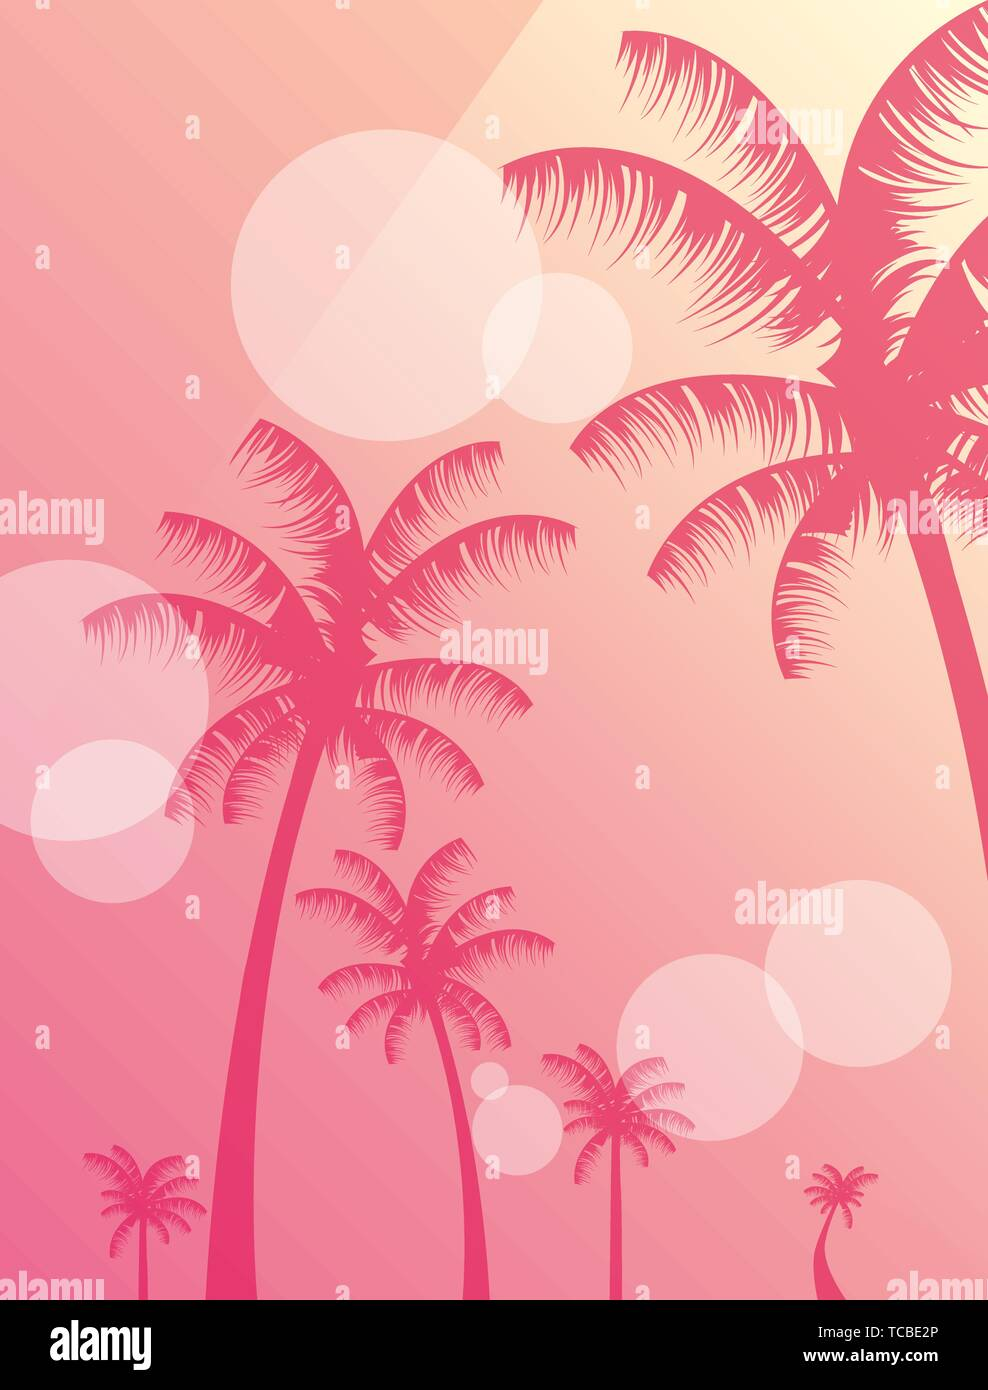 summer time banner foliage palm trees blurred background vector illustration cinco de mayo celebration with skull decorative vector illustration design - Stock Vector